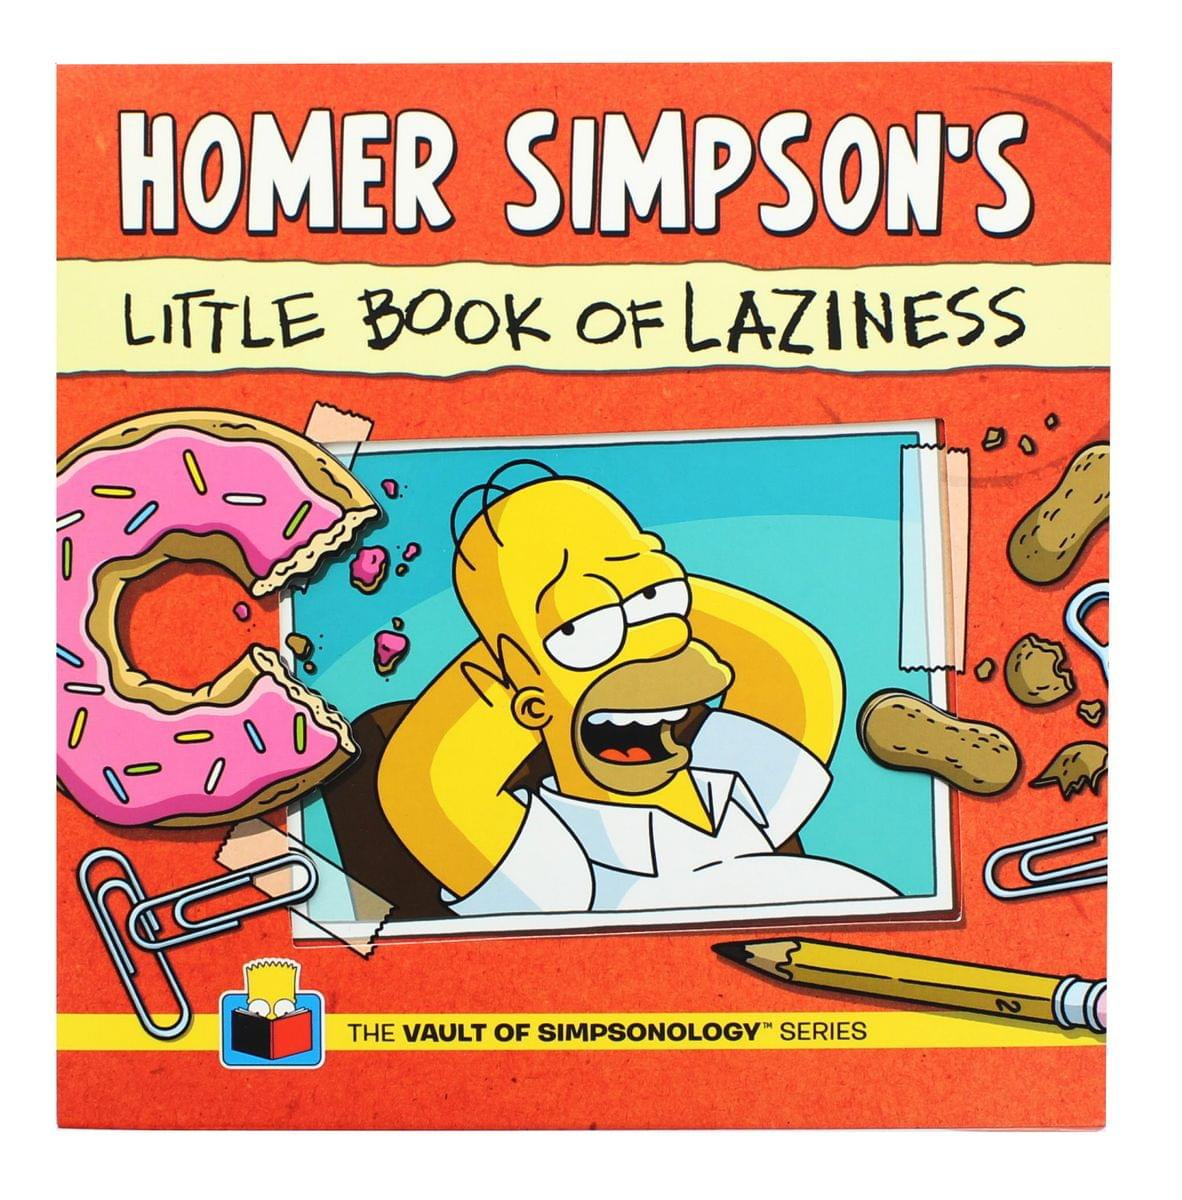 The Simpsons Homer's Little Book of Laziness (Vault of Simpsonology Series)